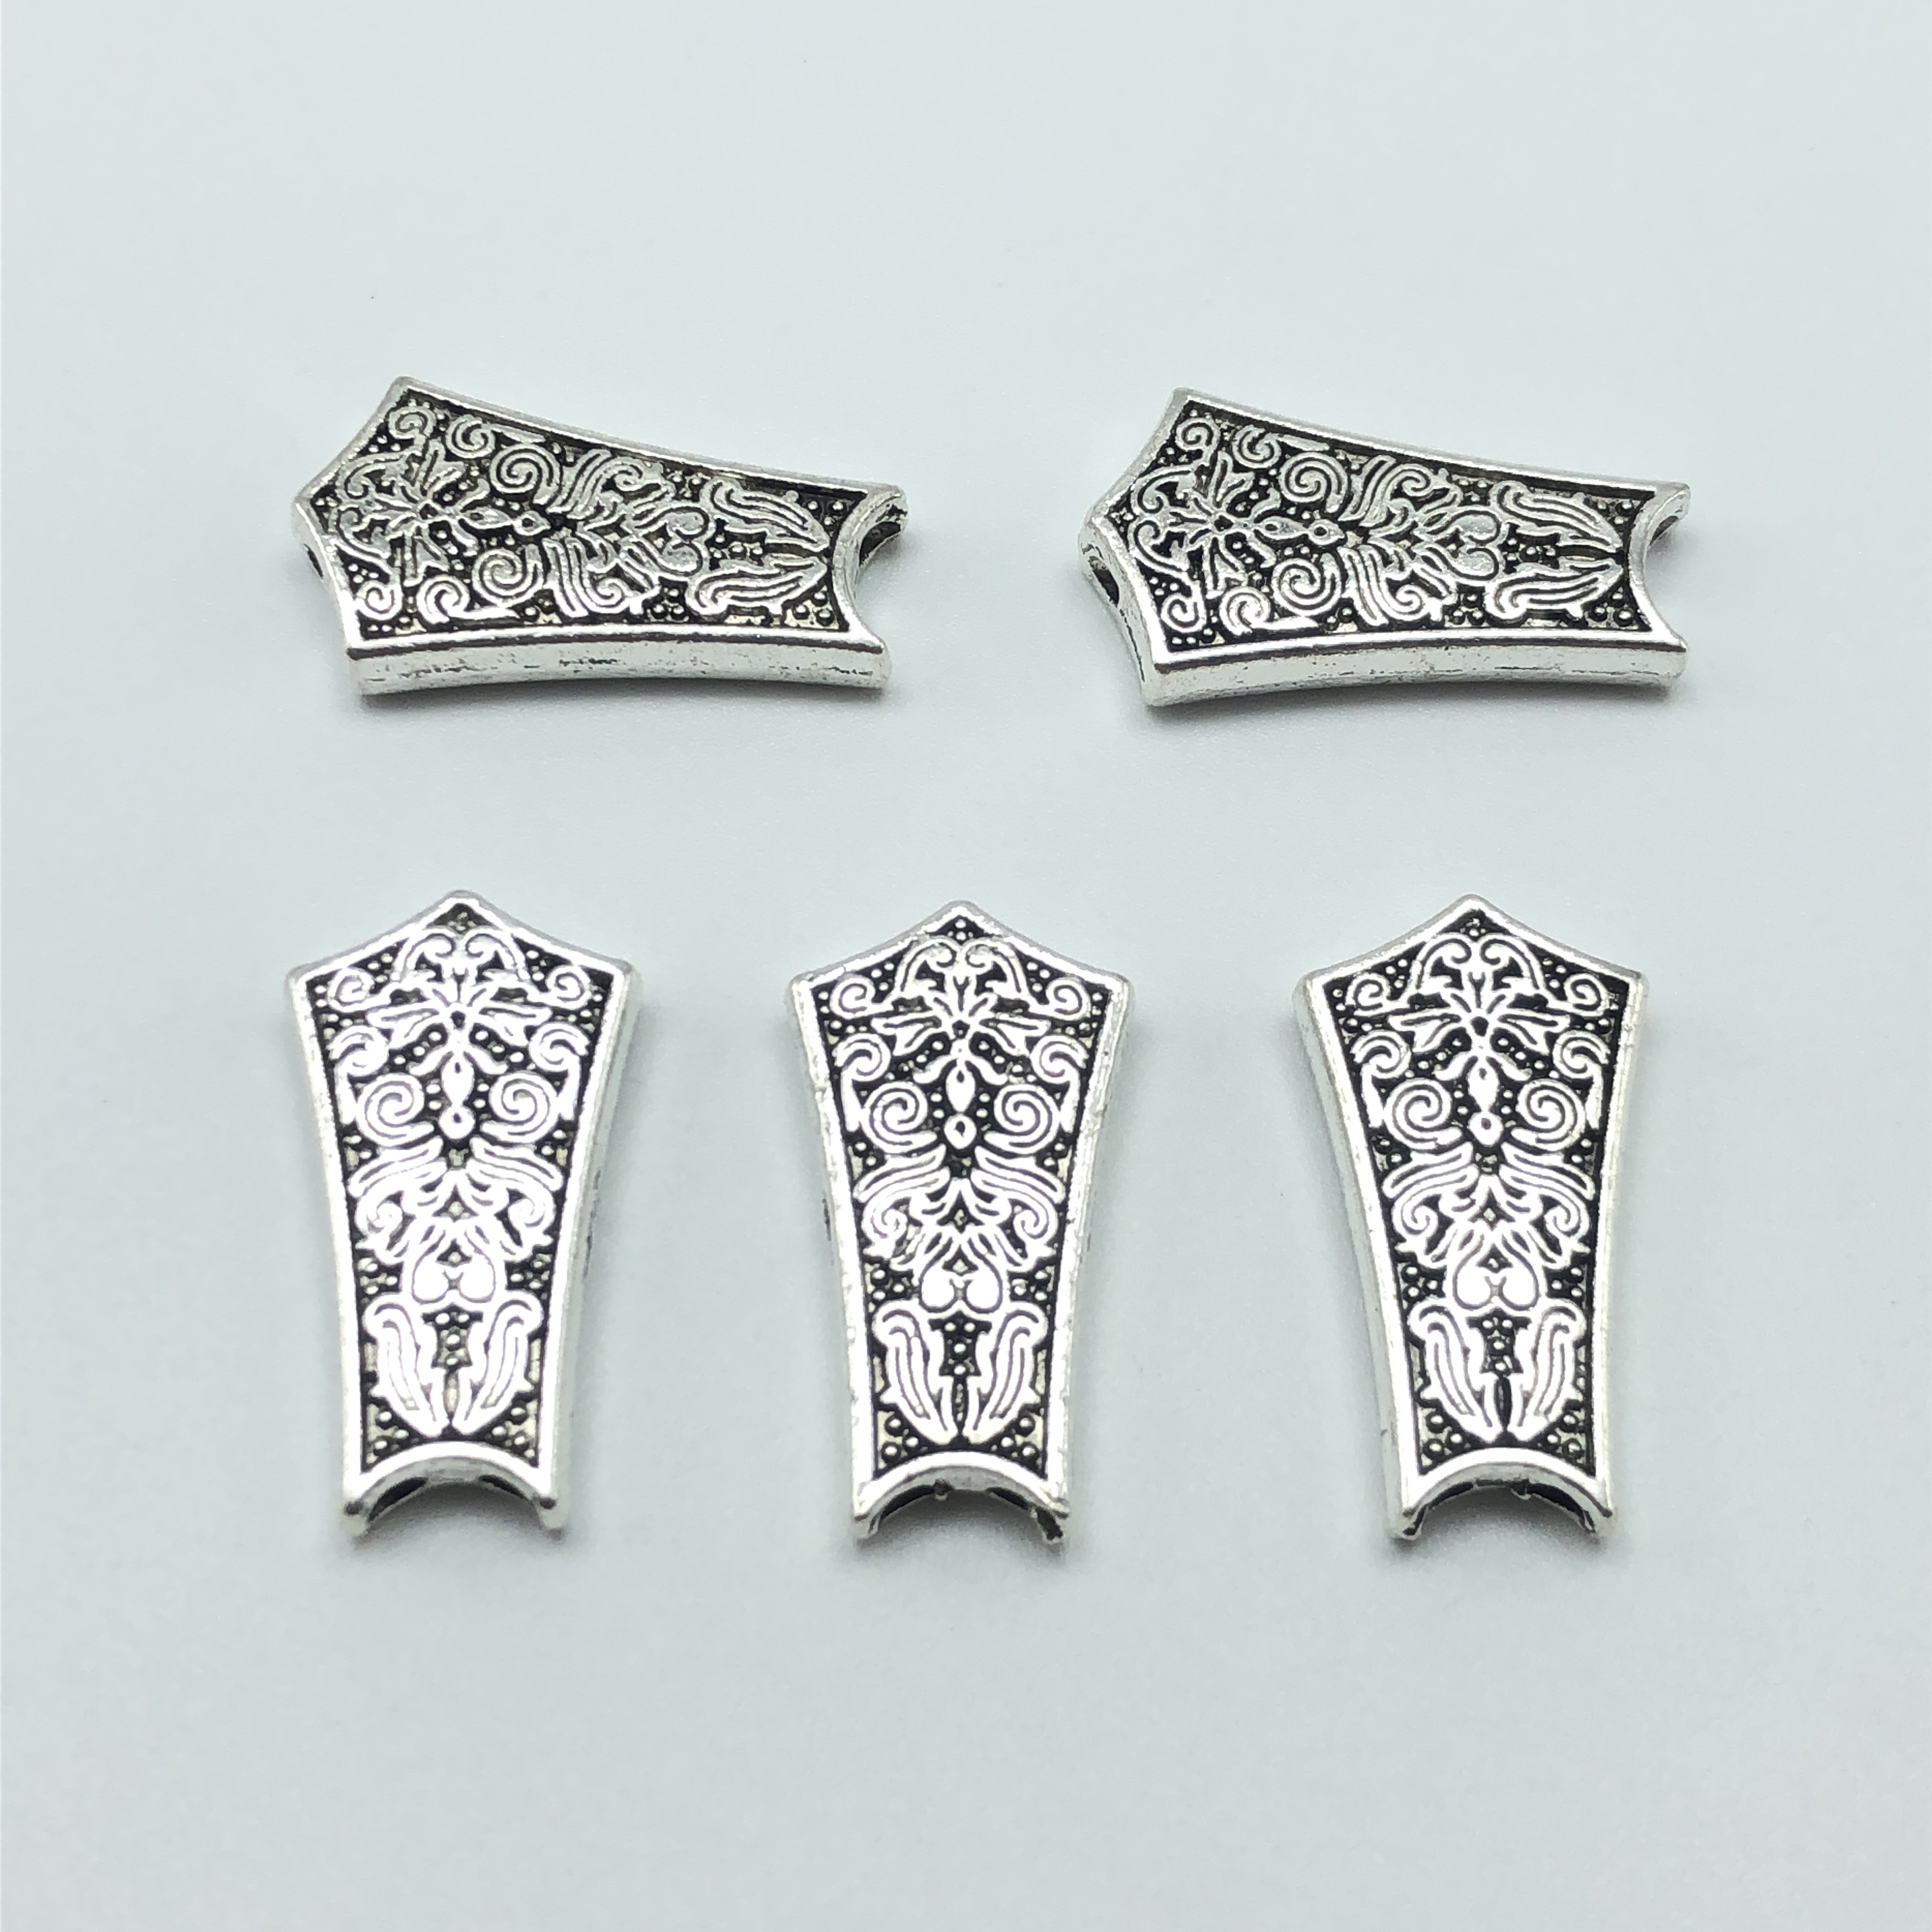 5pcs Double Hole Carved Antique Silver Shield Shape Connector For Jewelry Making DIY Handmade Accessories